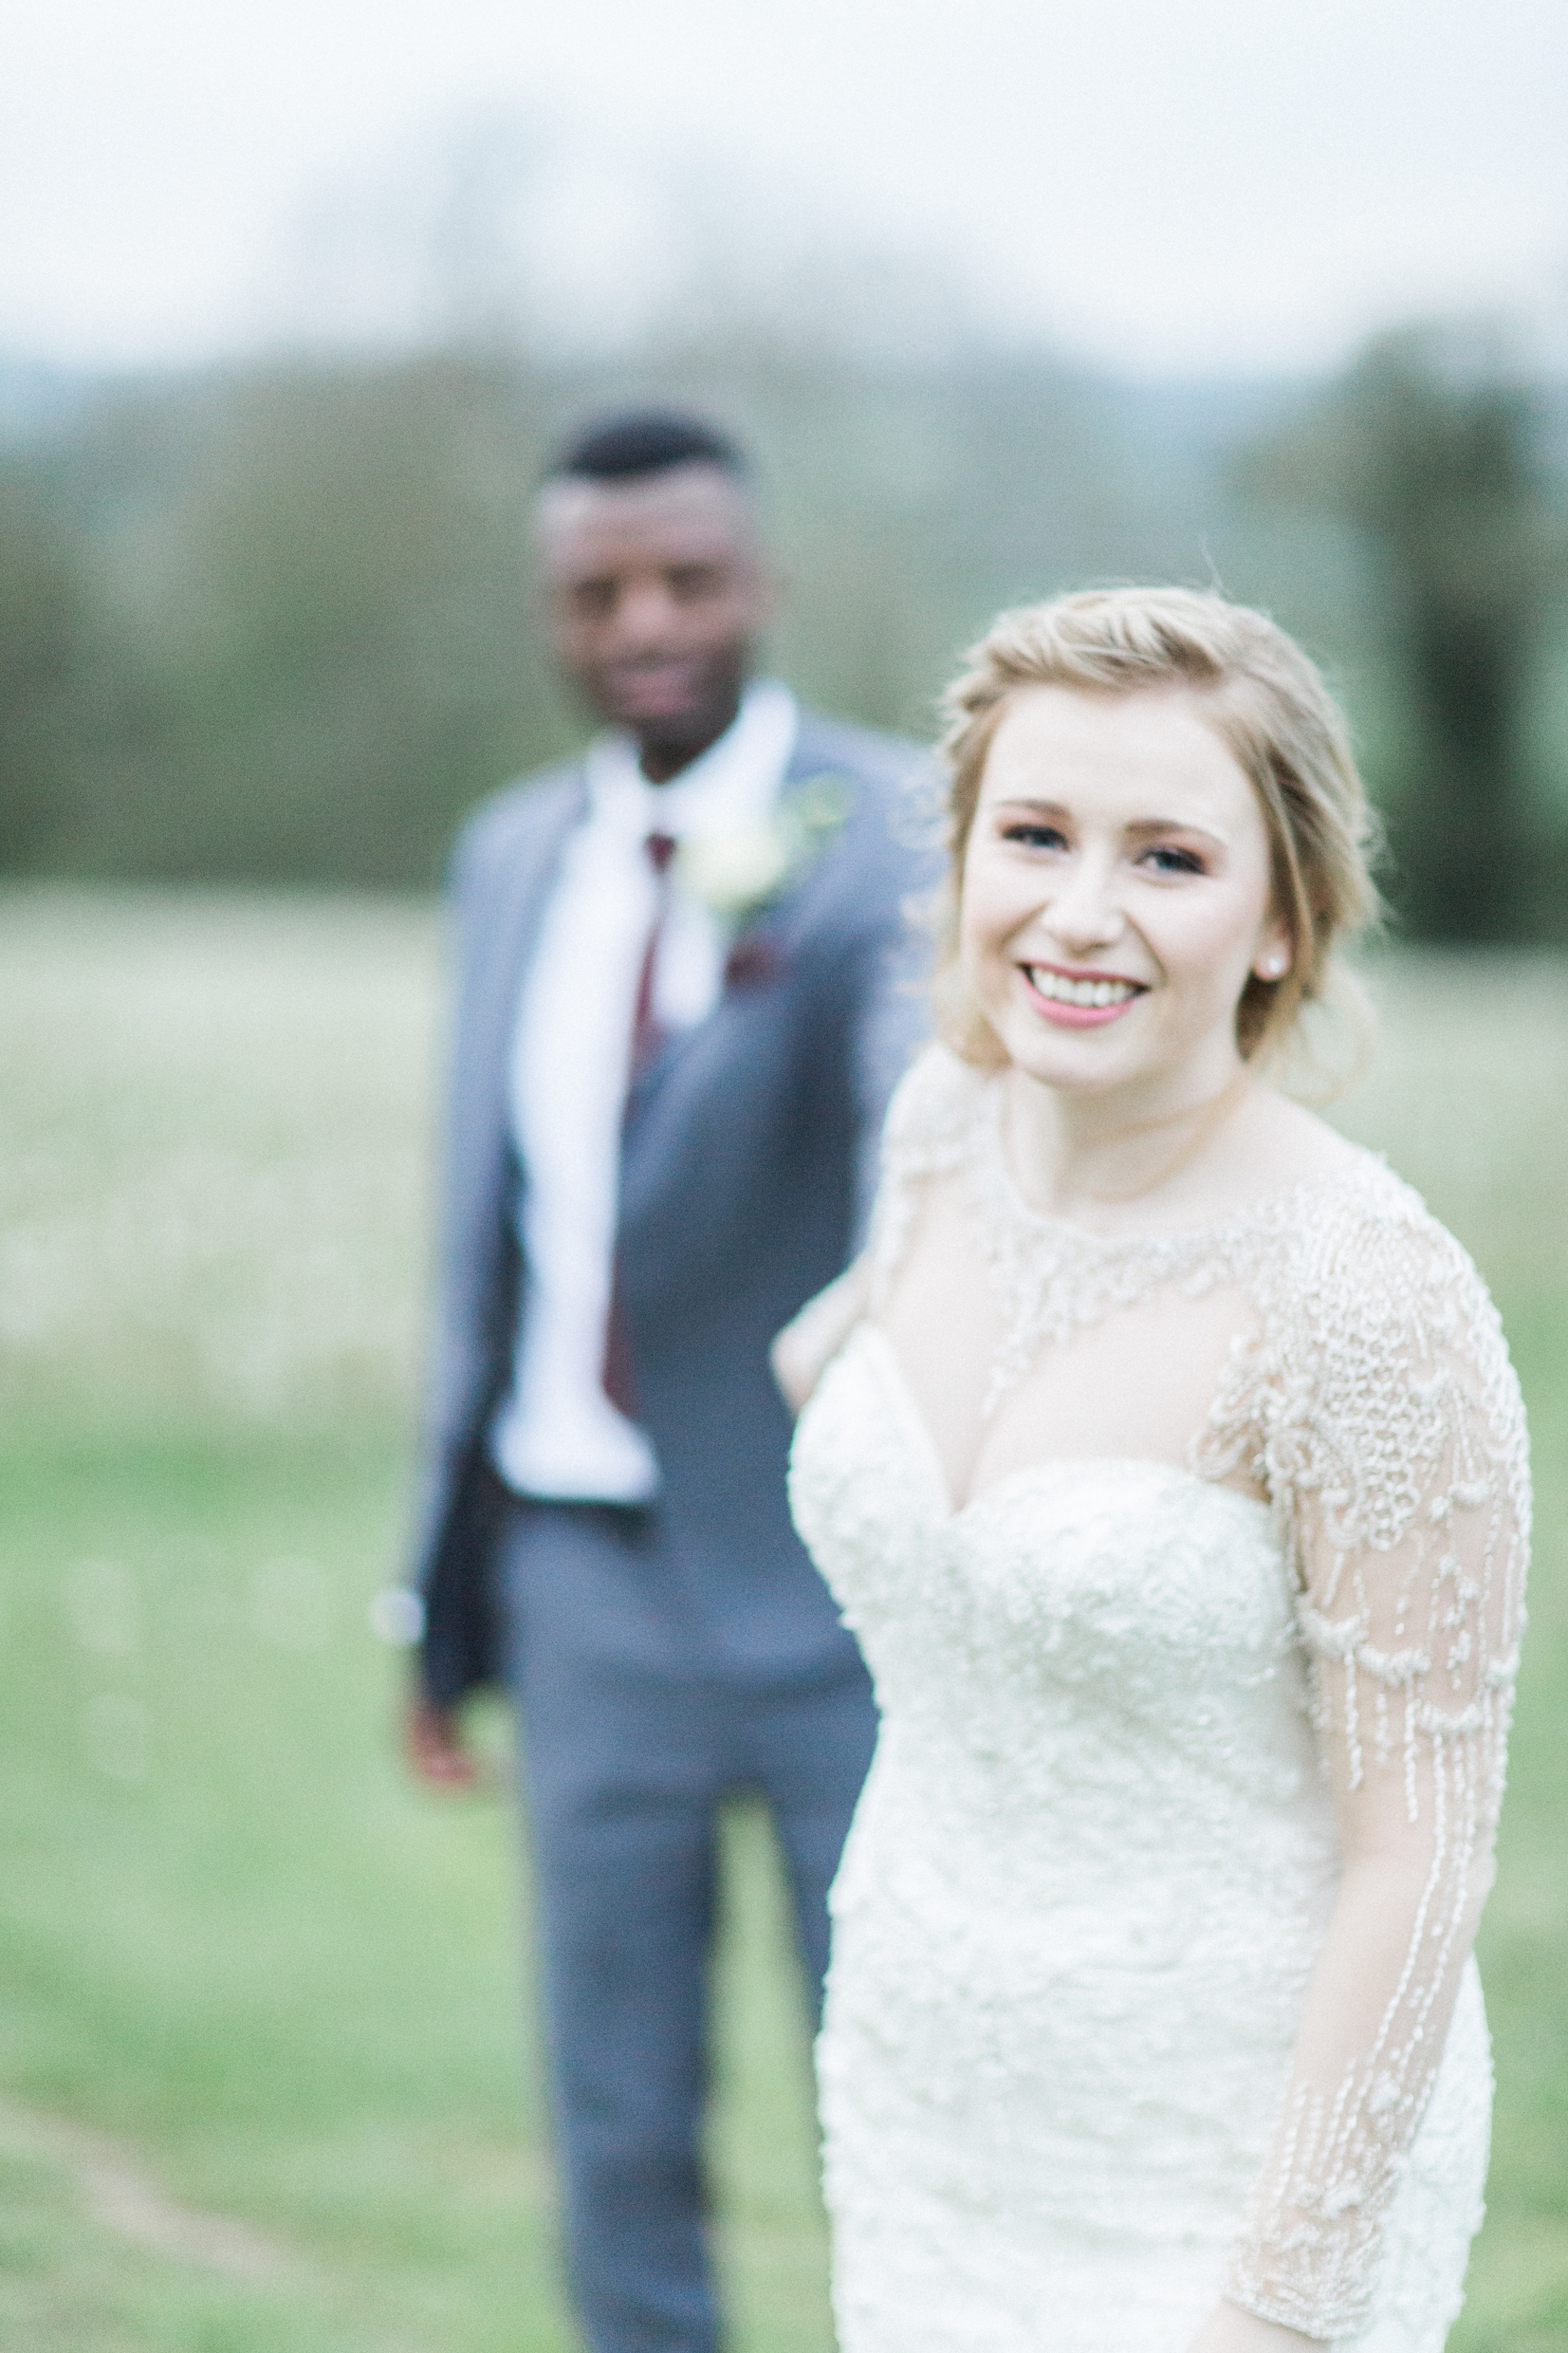 haley & jermaine-47.jpg